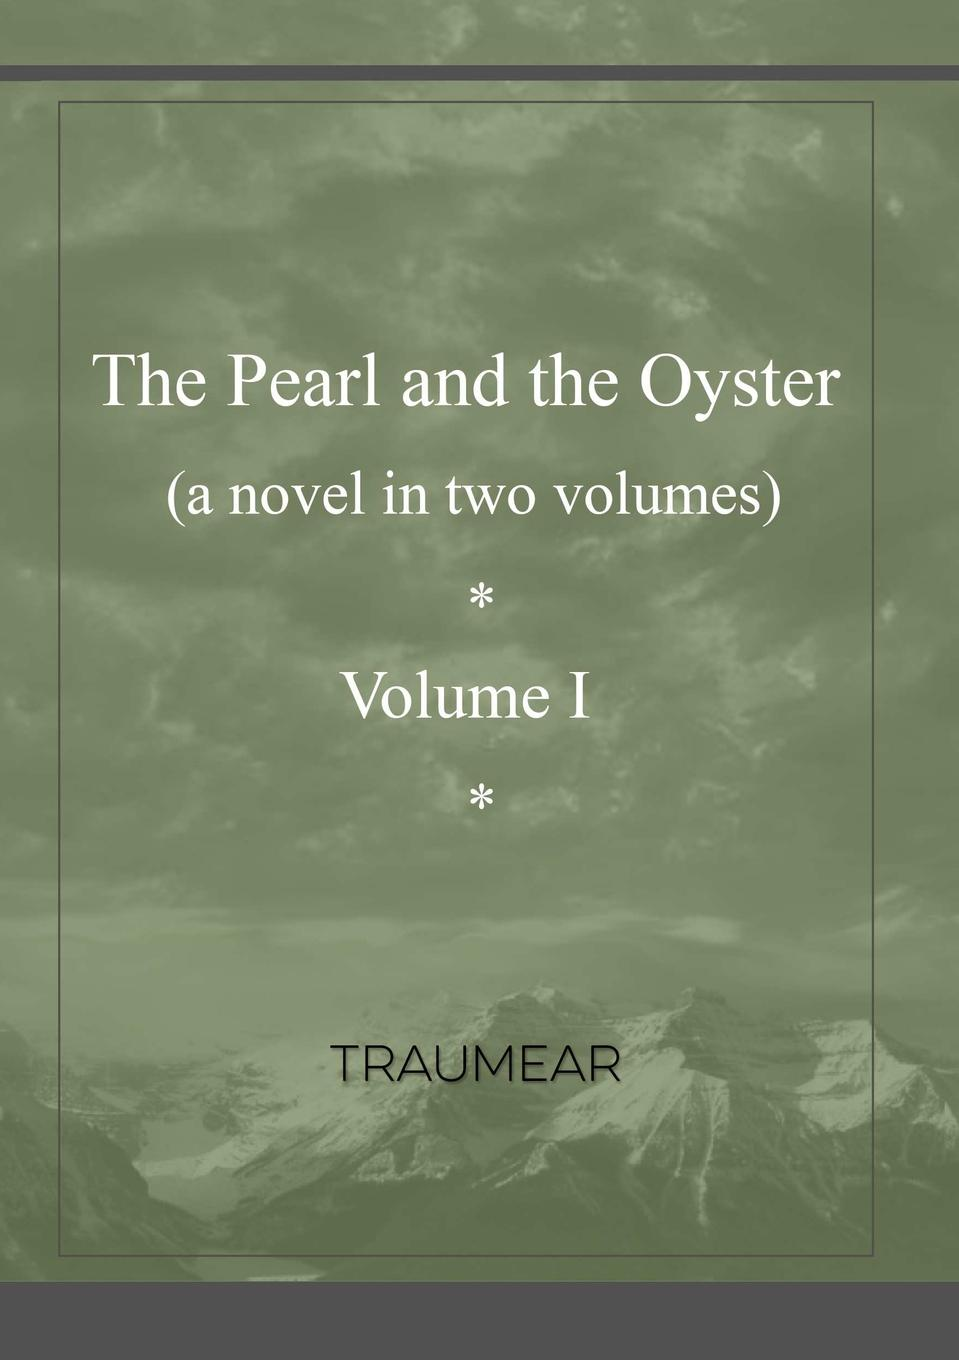 Traumear The Pearl and the Oyster Volume I